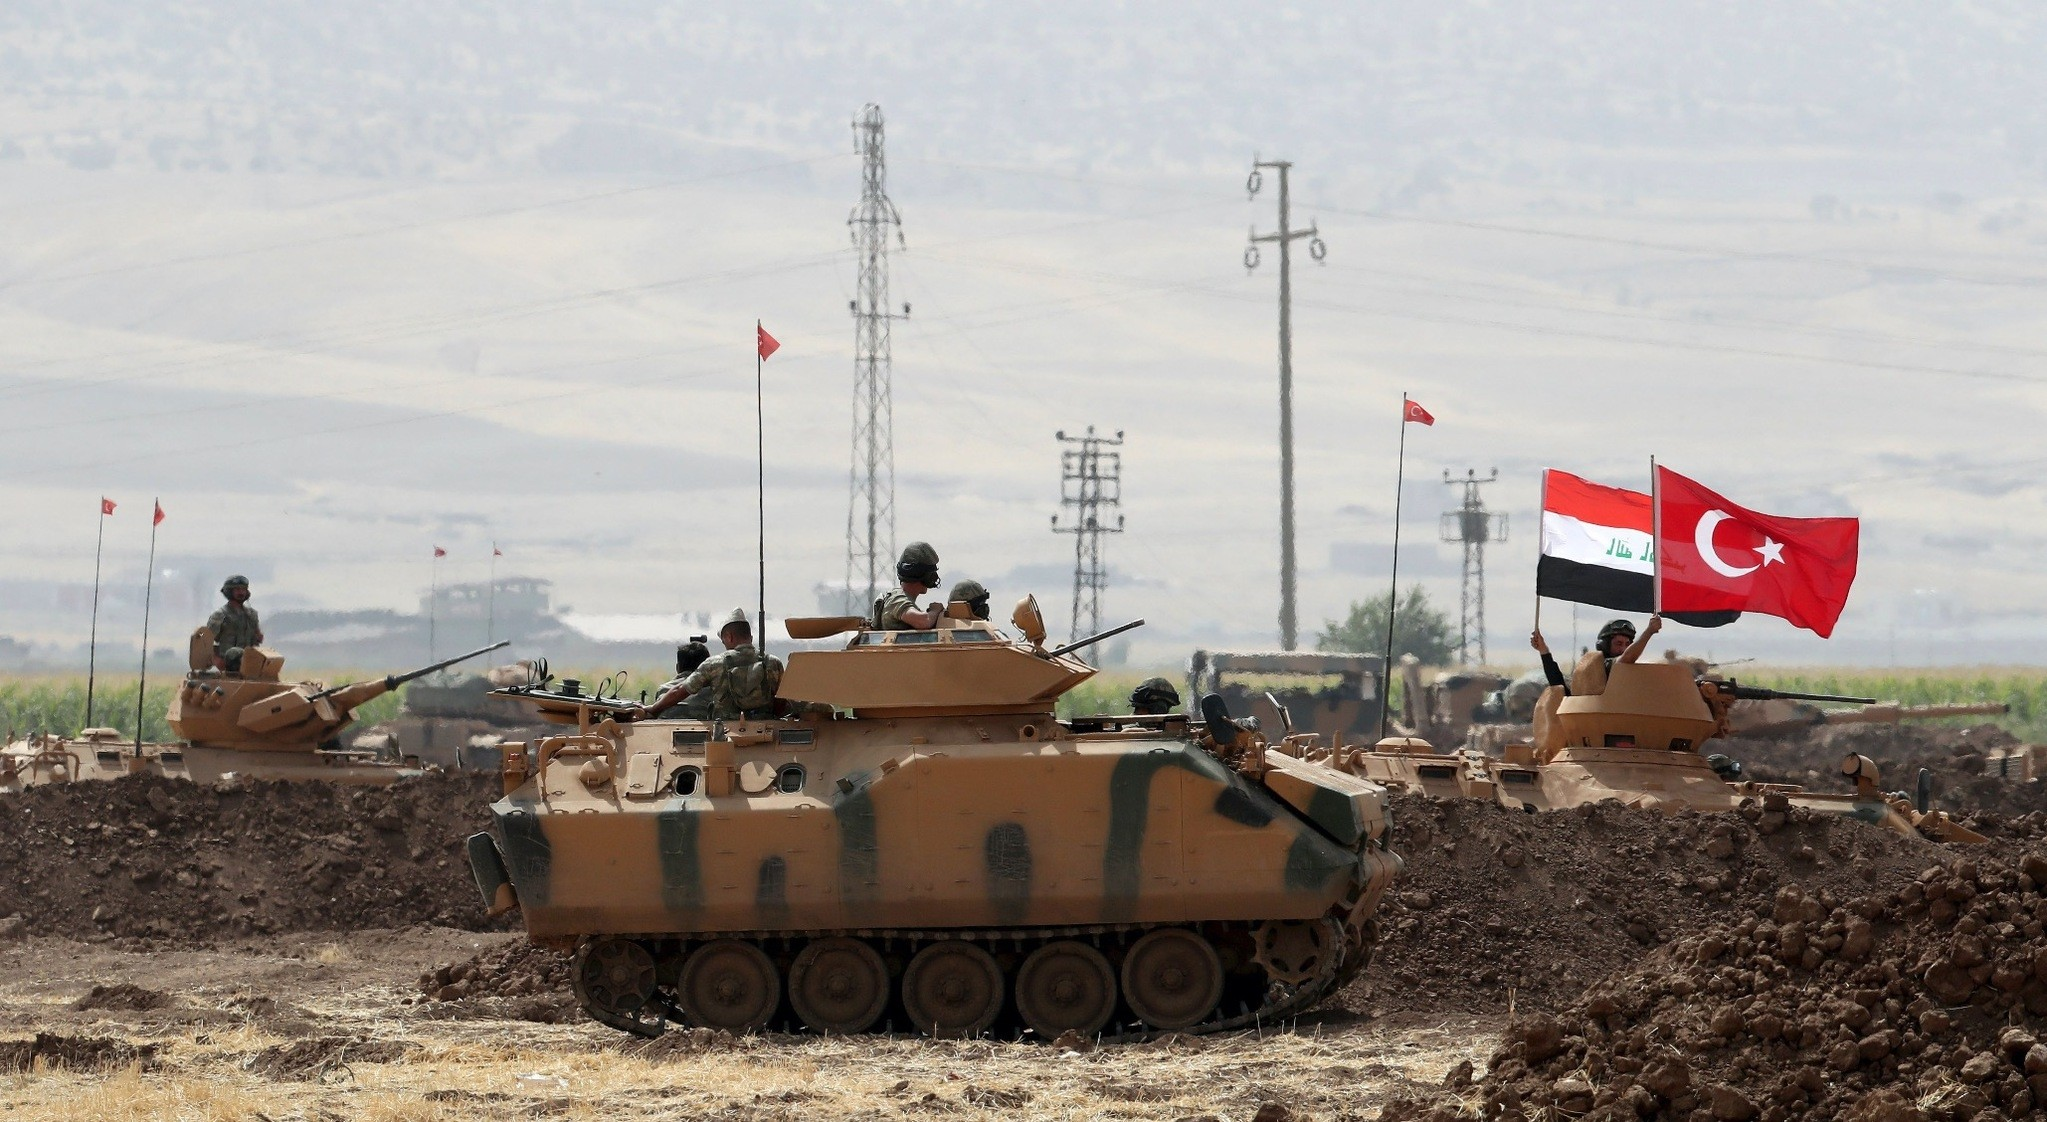 Soldiers hold the Turkish and Iraqi flags while standing in the turret of a Turkish armored vehicle participating in a military exercise near the Turkish-Iraqi border in u015eu0131rnak, Sept. 26, 2017.